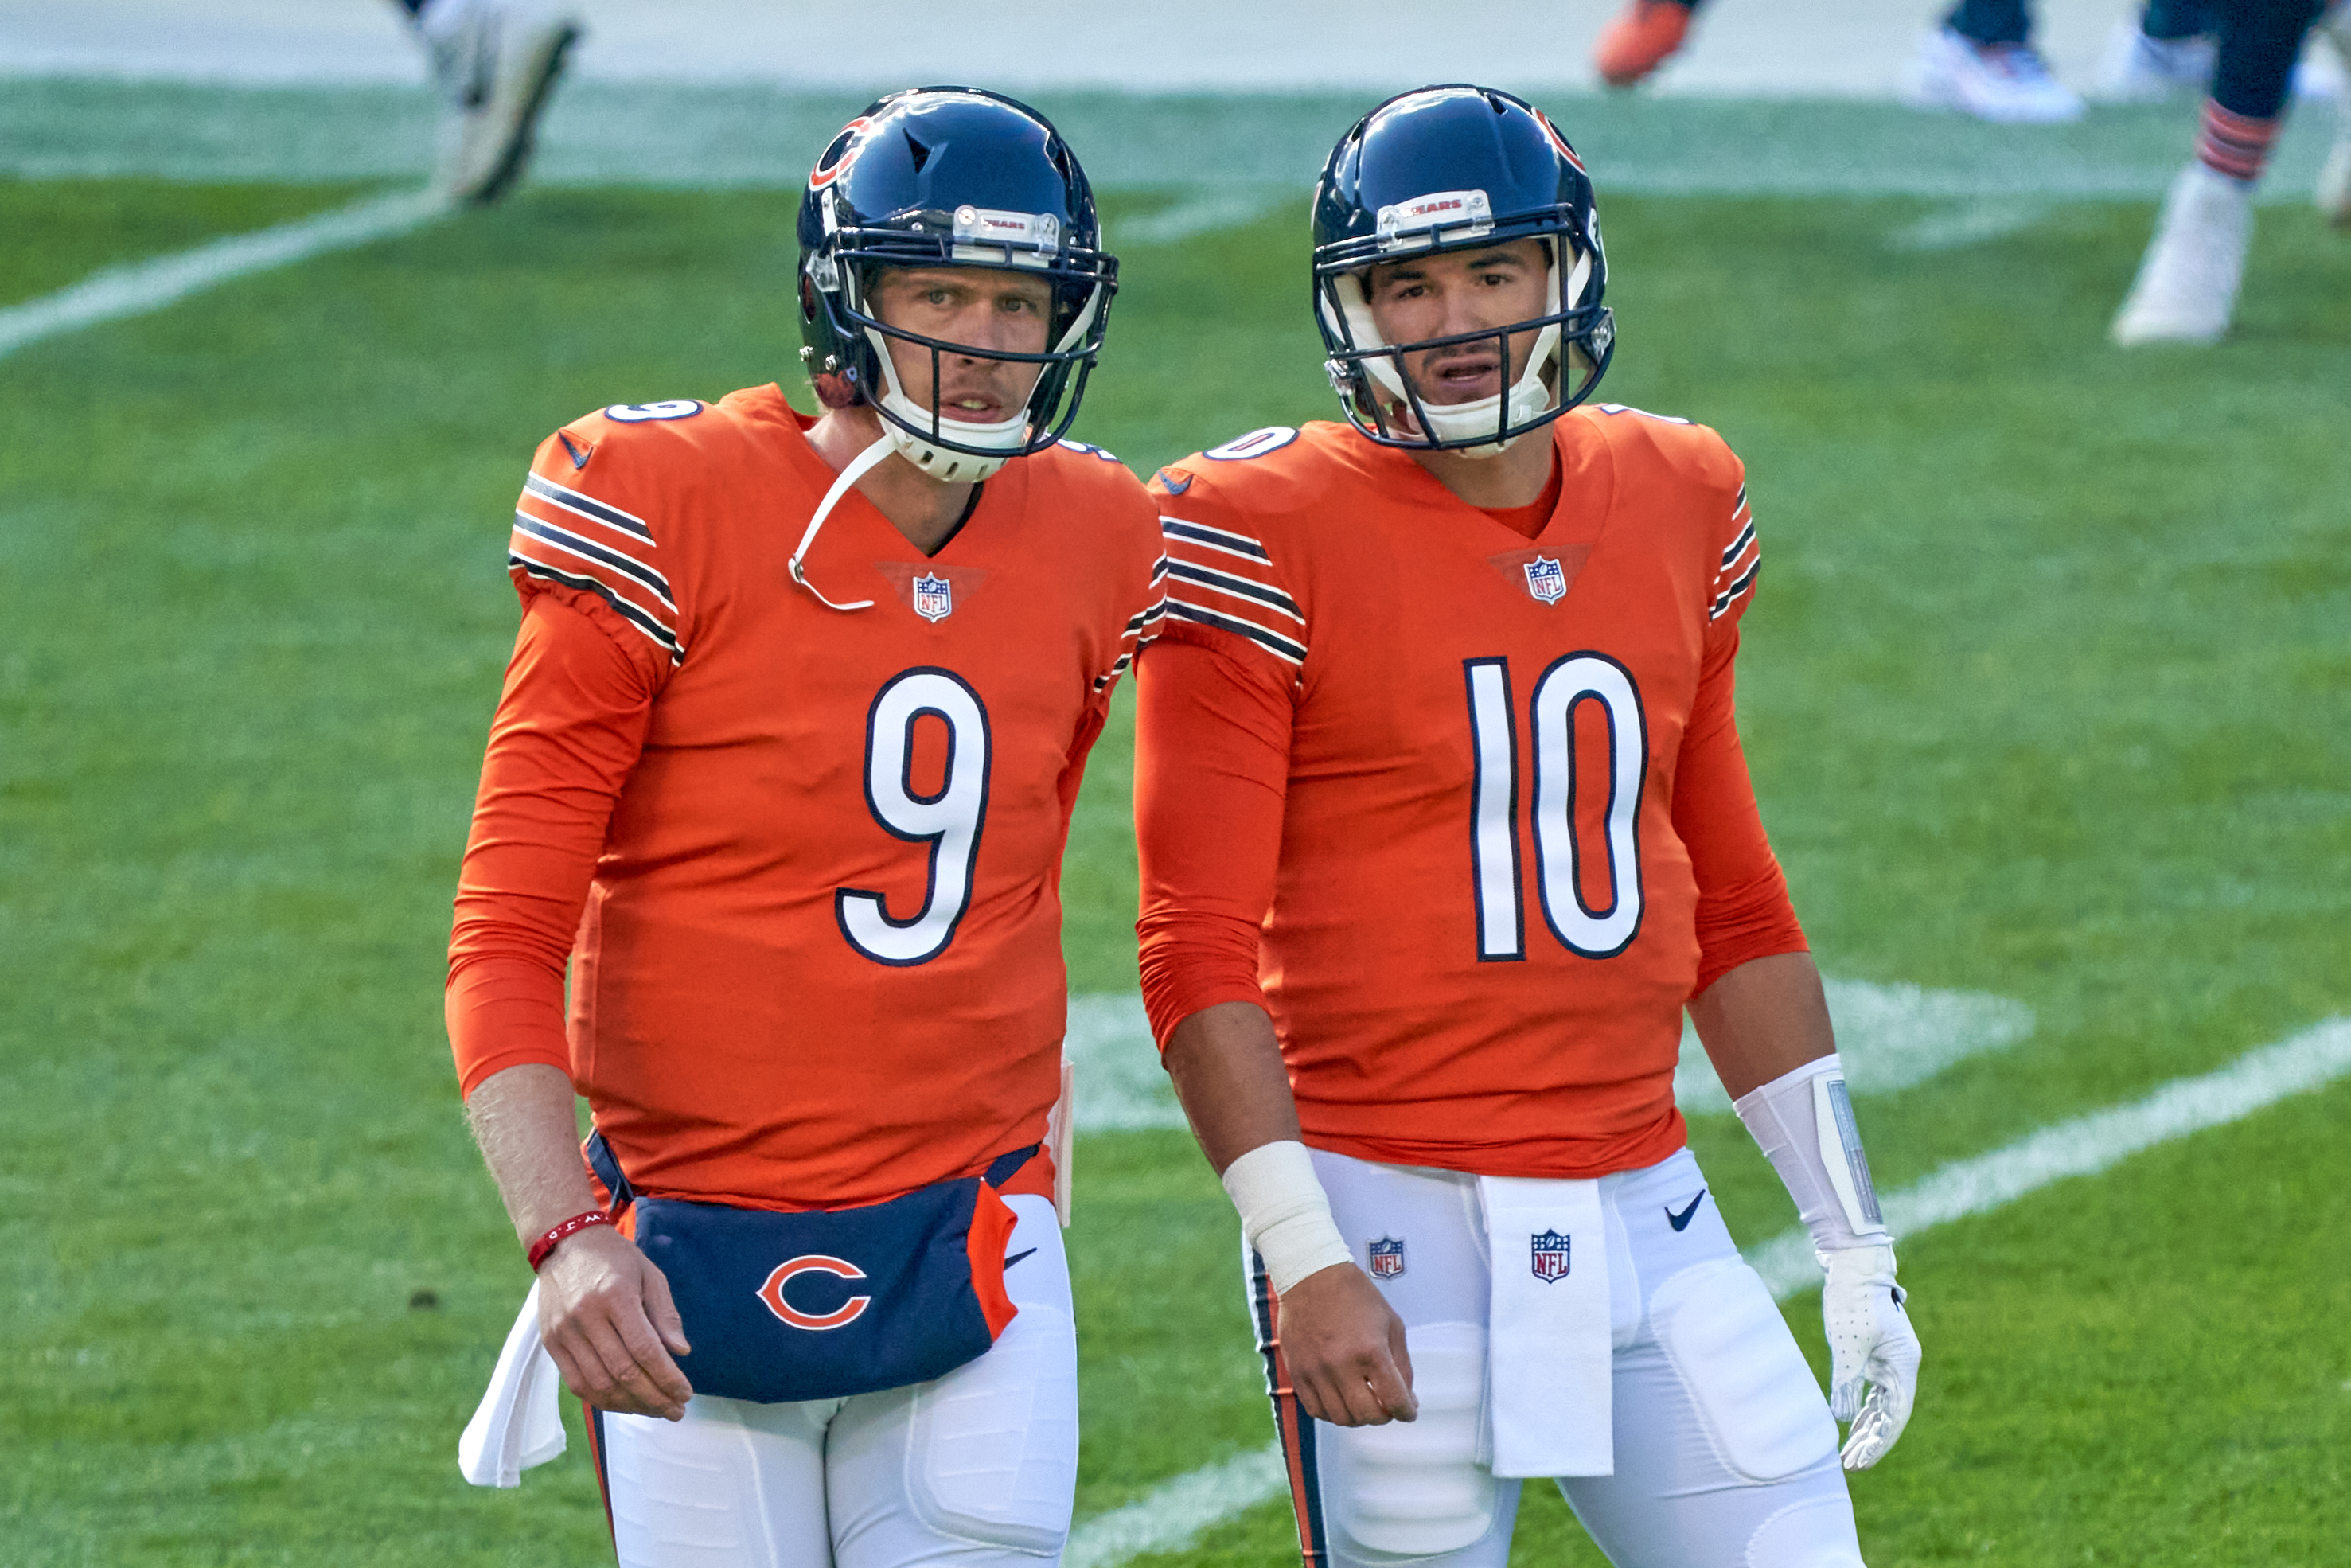 Bears quarterbacks Nick Foles and Mitchell Trubisky